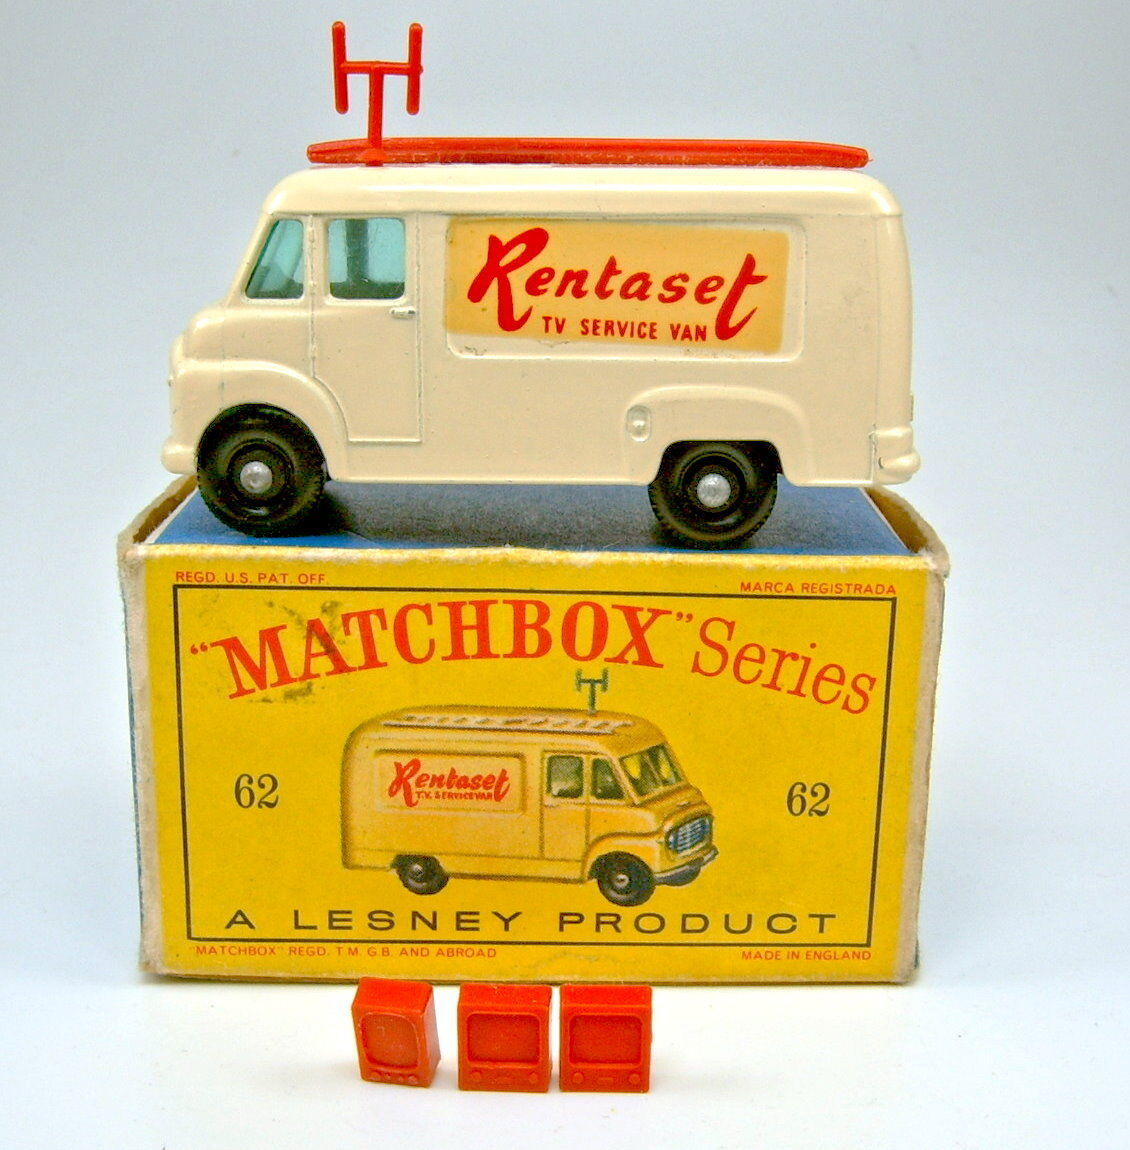 Matchbox  Rw 62b TV Service Van later  renatset  version Top in  D  box  font des activités d'escompte